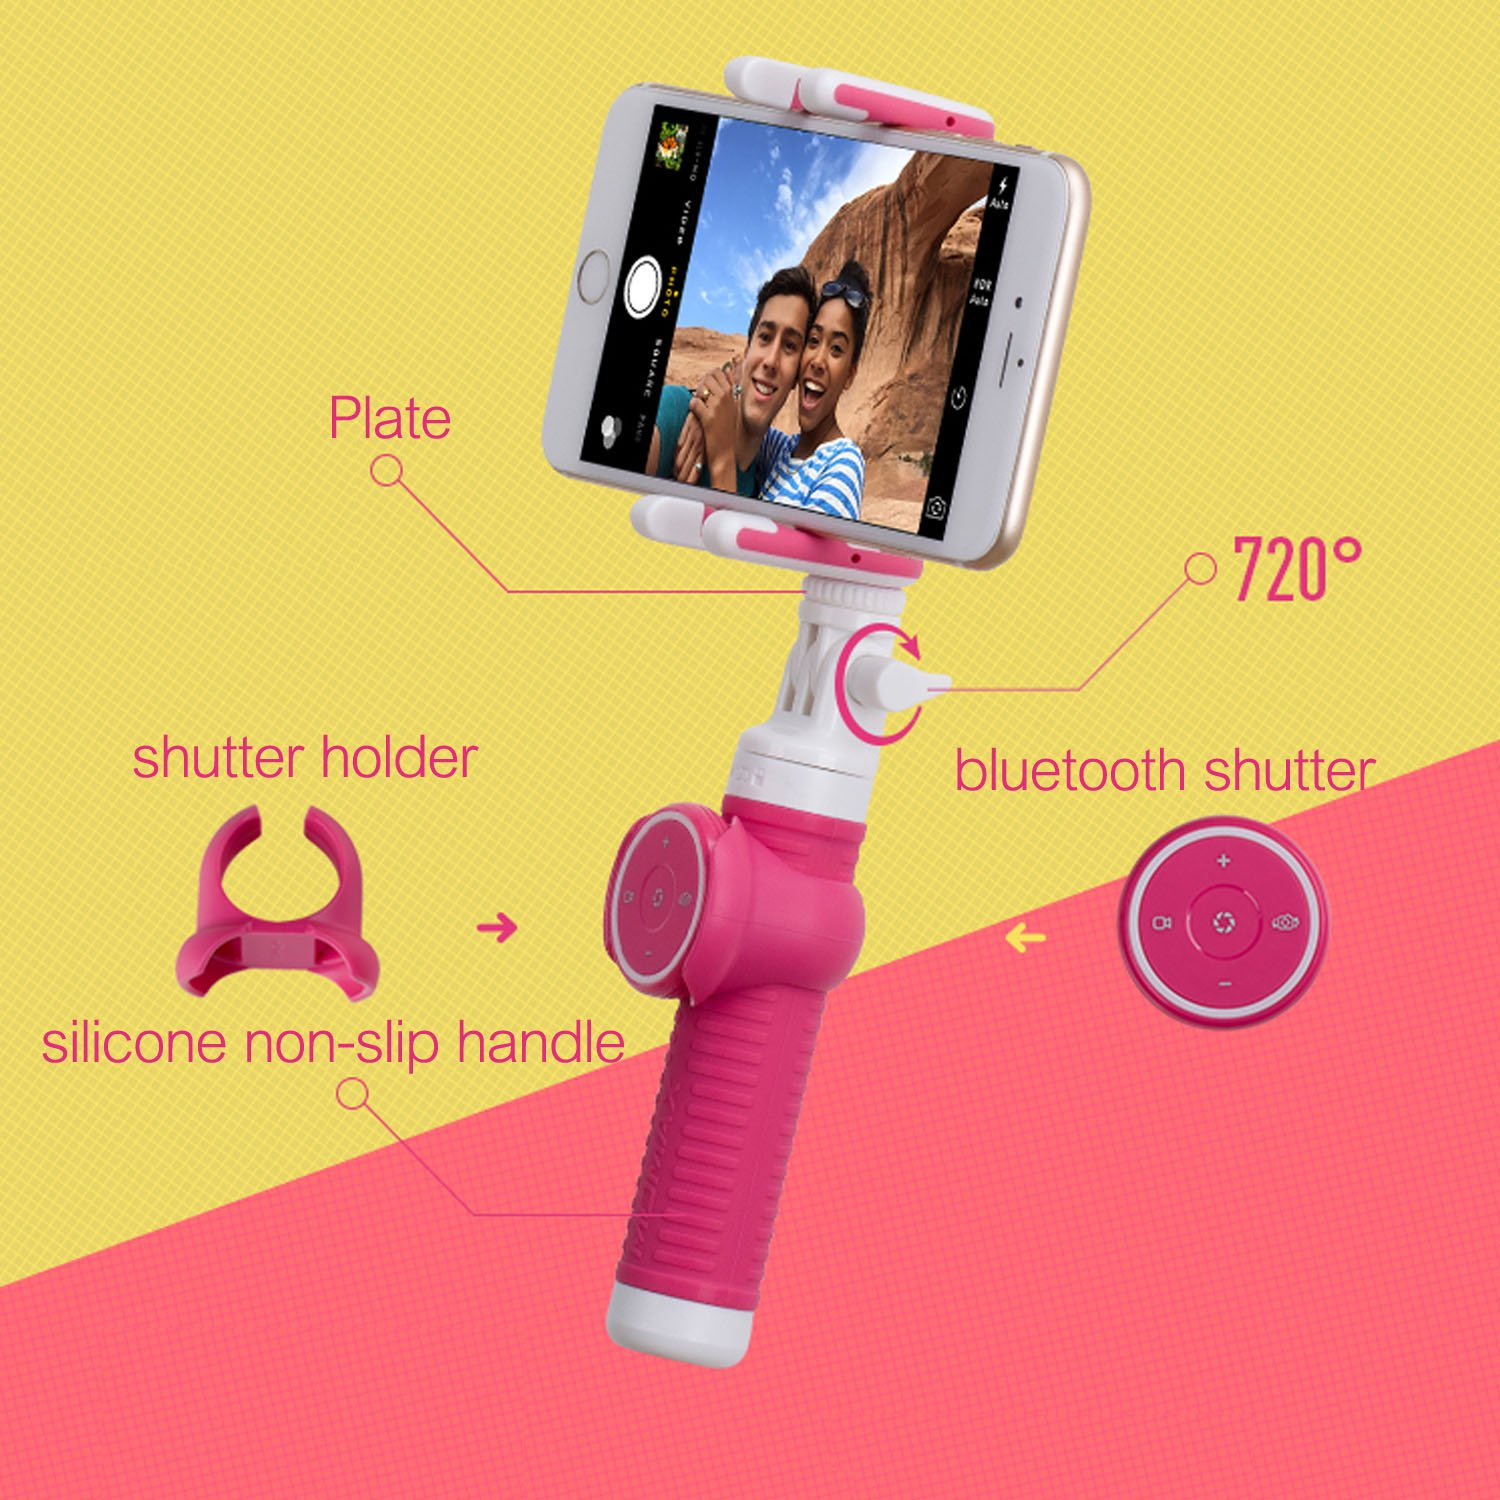 MOMAX Bluetooth Selfie Stick, Foldable Extendable Selfie Monopod with Removable Remote Bluetooth Shutter for for iPhone X/8/7, S9 and More (150cm Blue)